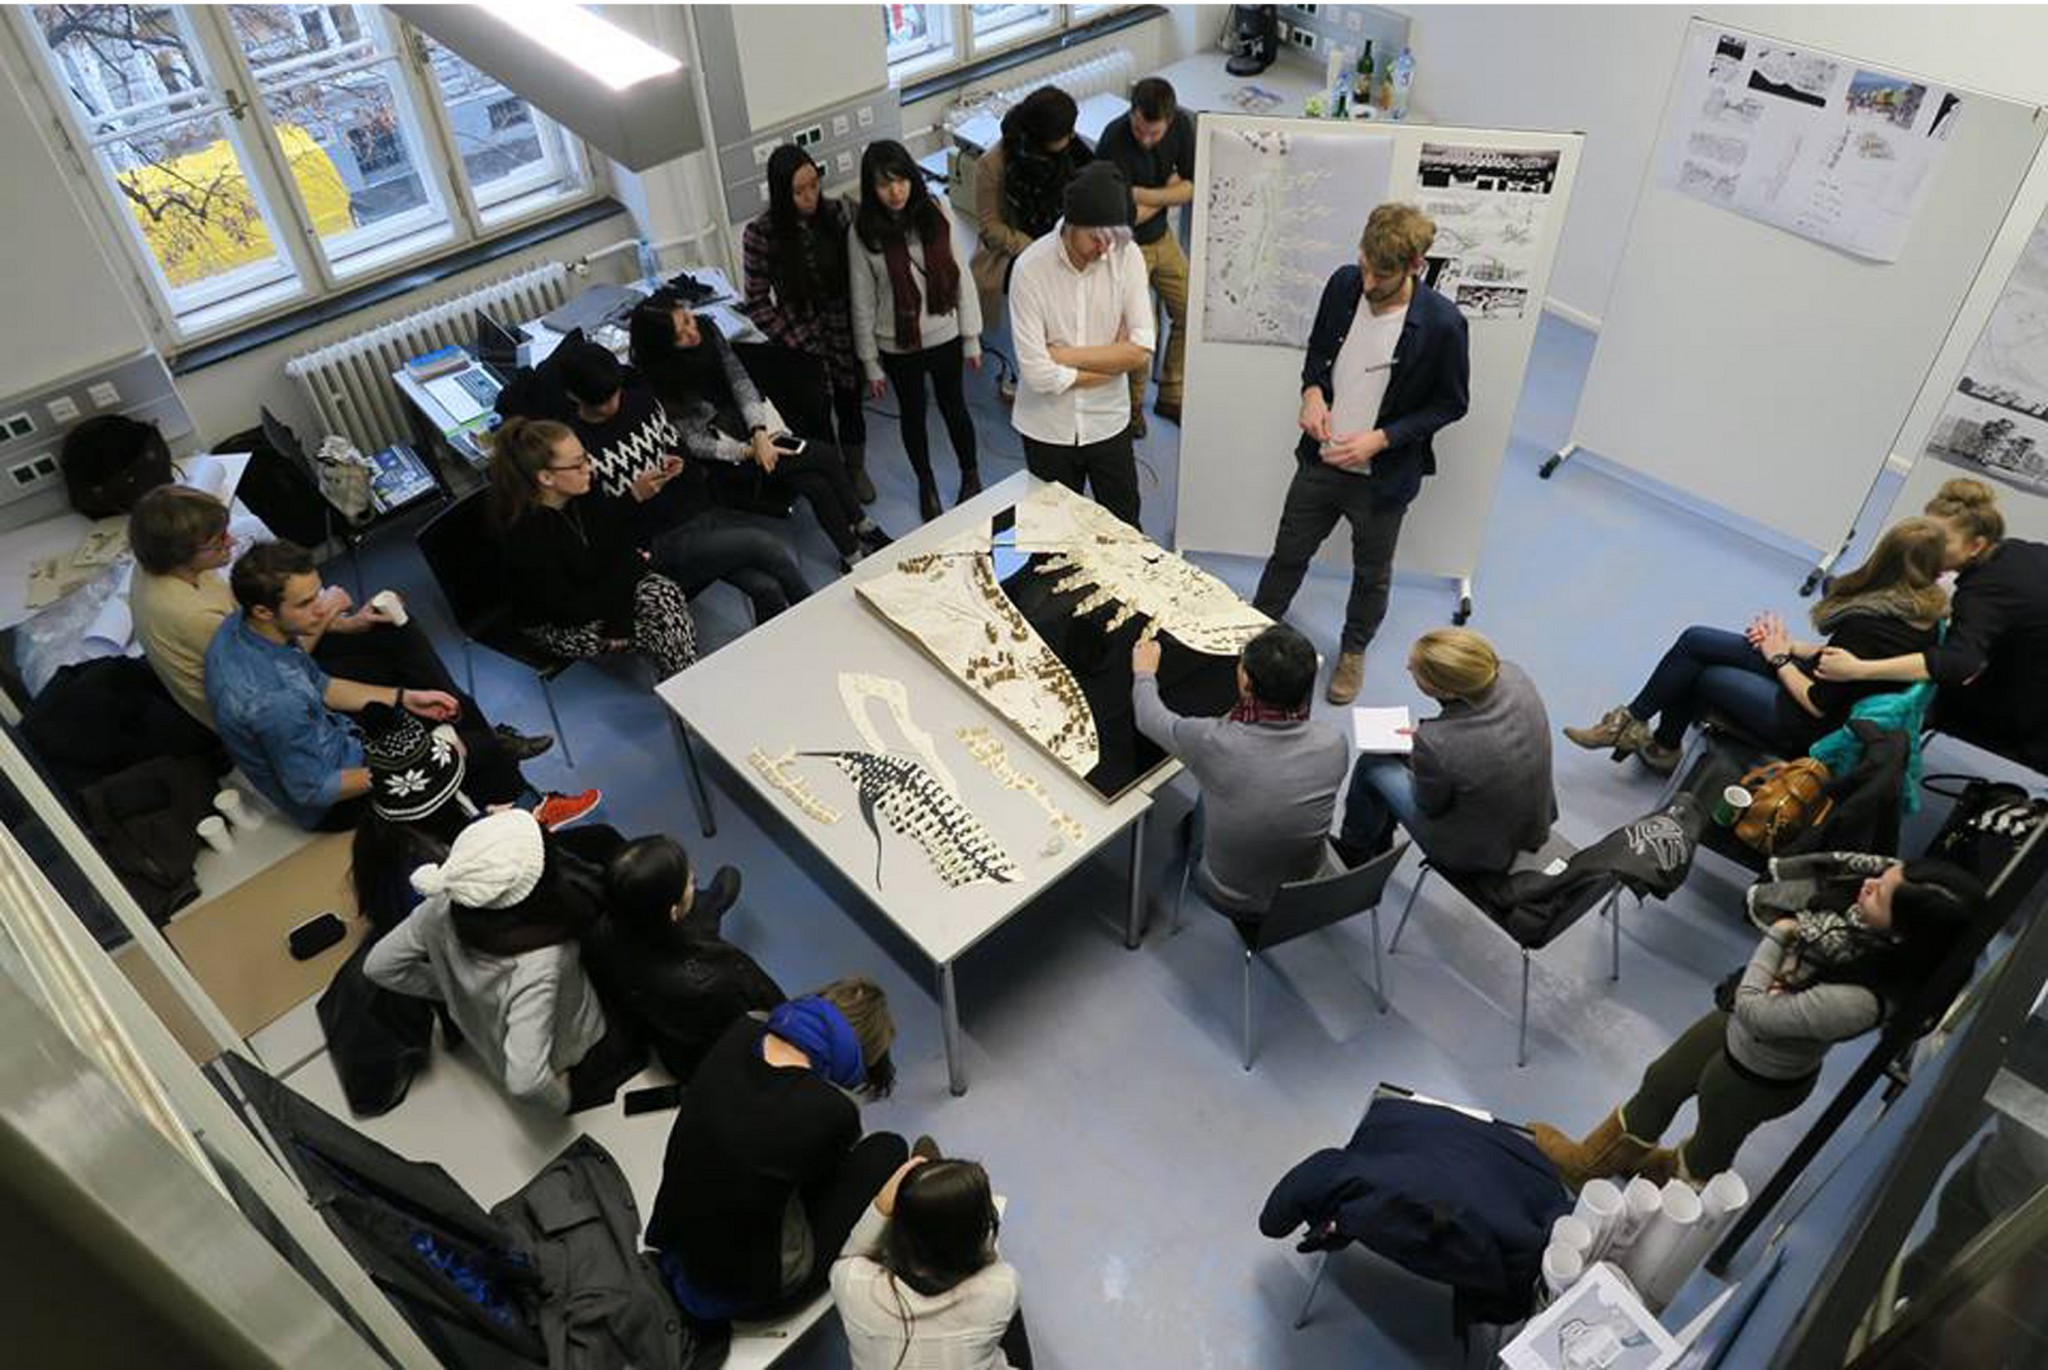 Collaborative Student Research ~ Tu graz austria school of architecture cuhk